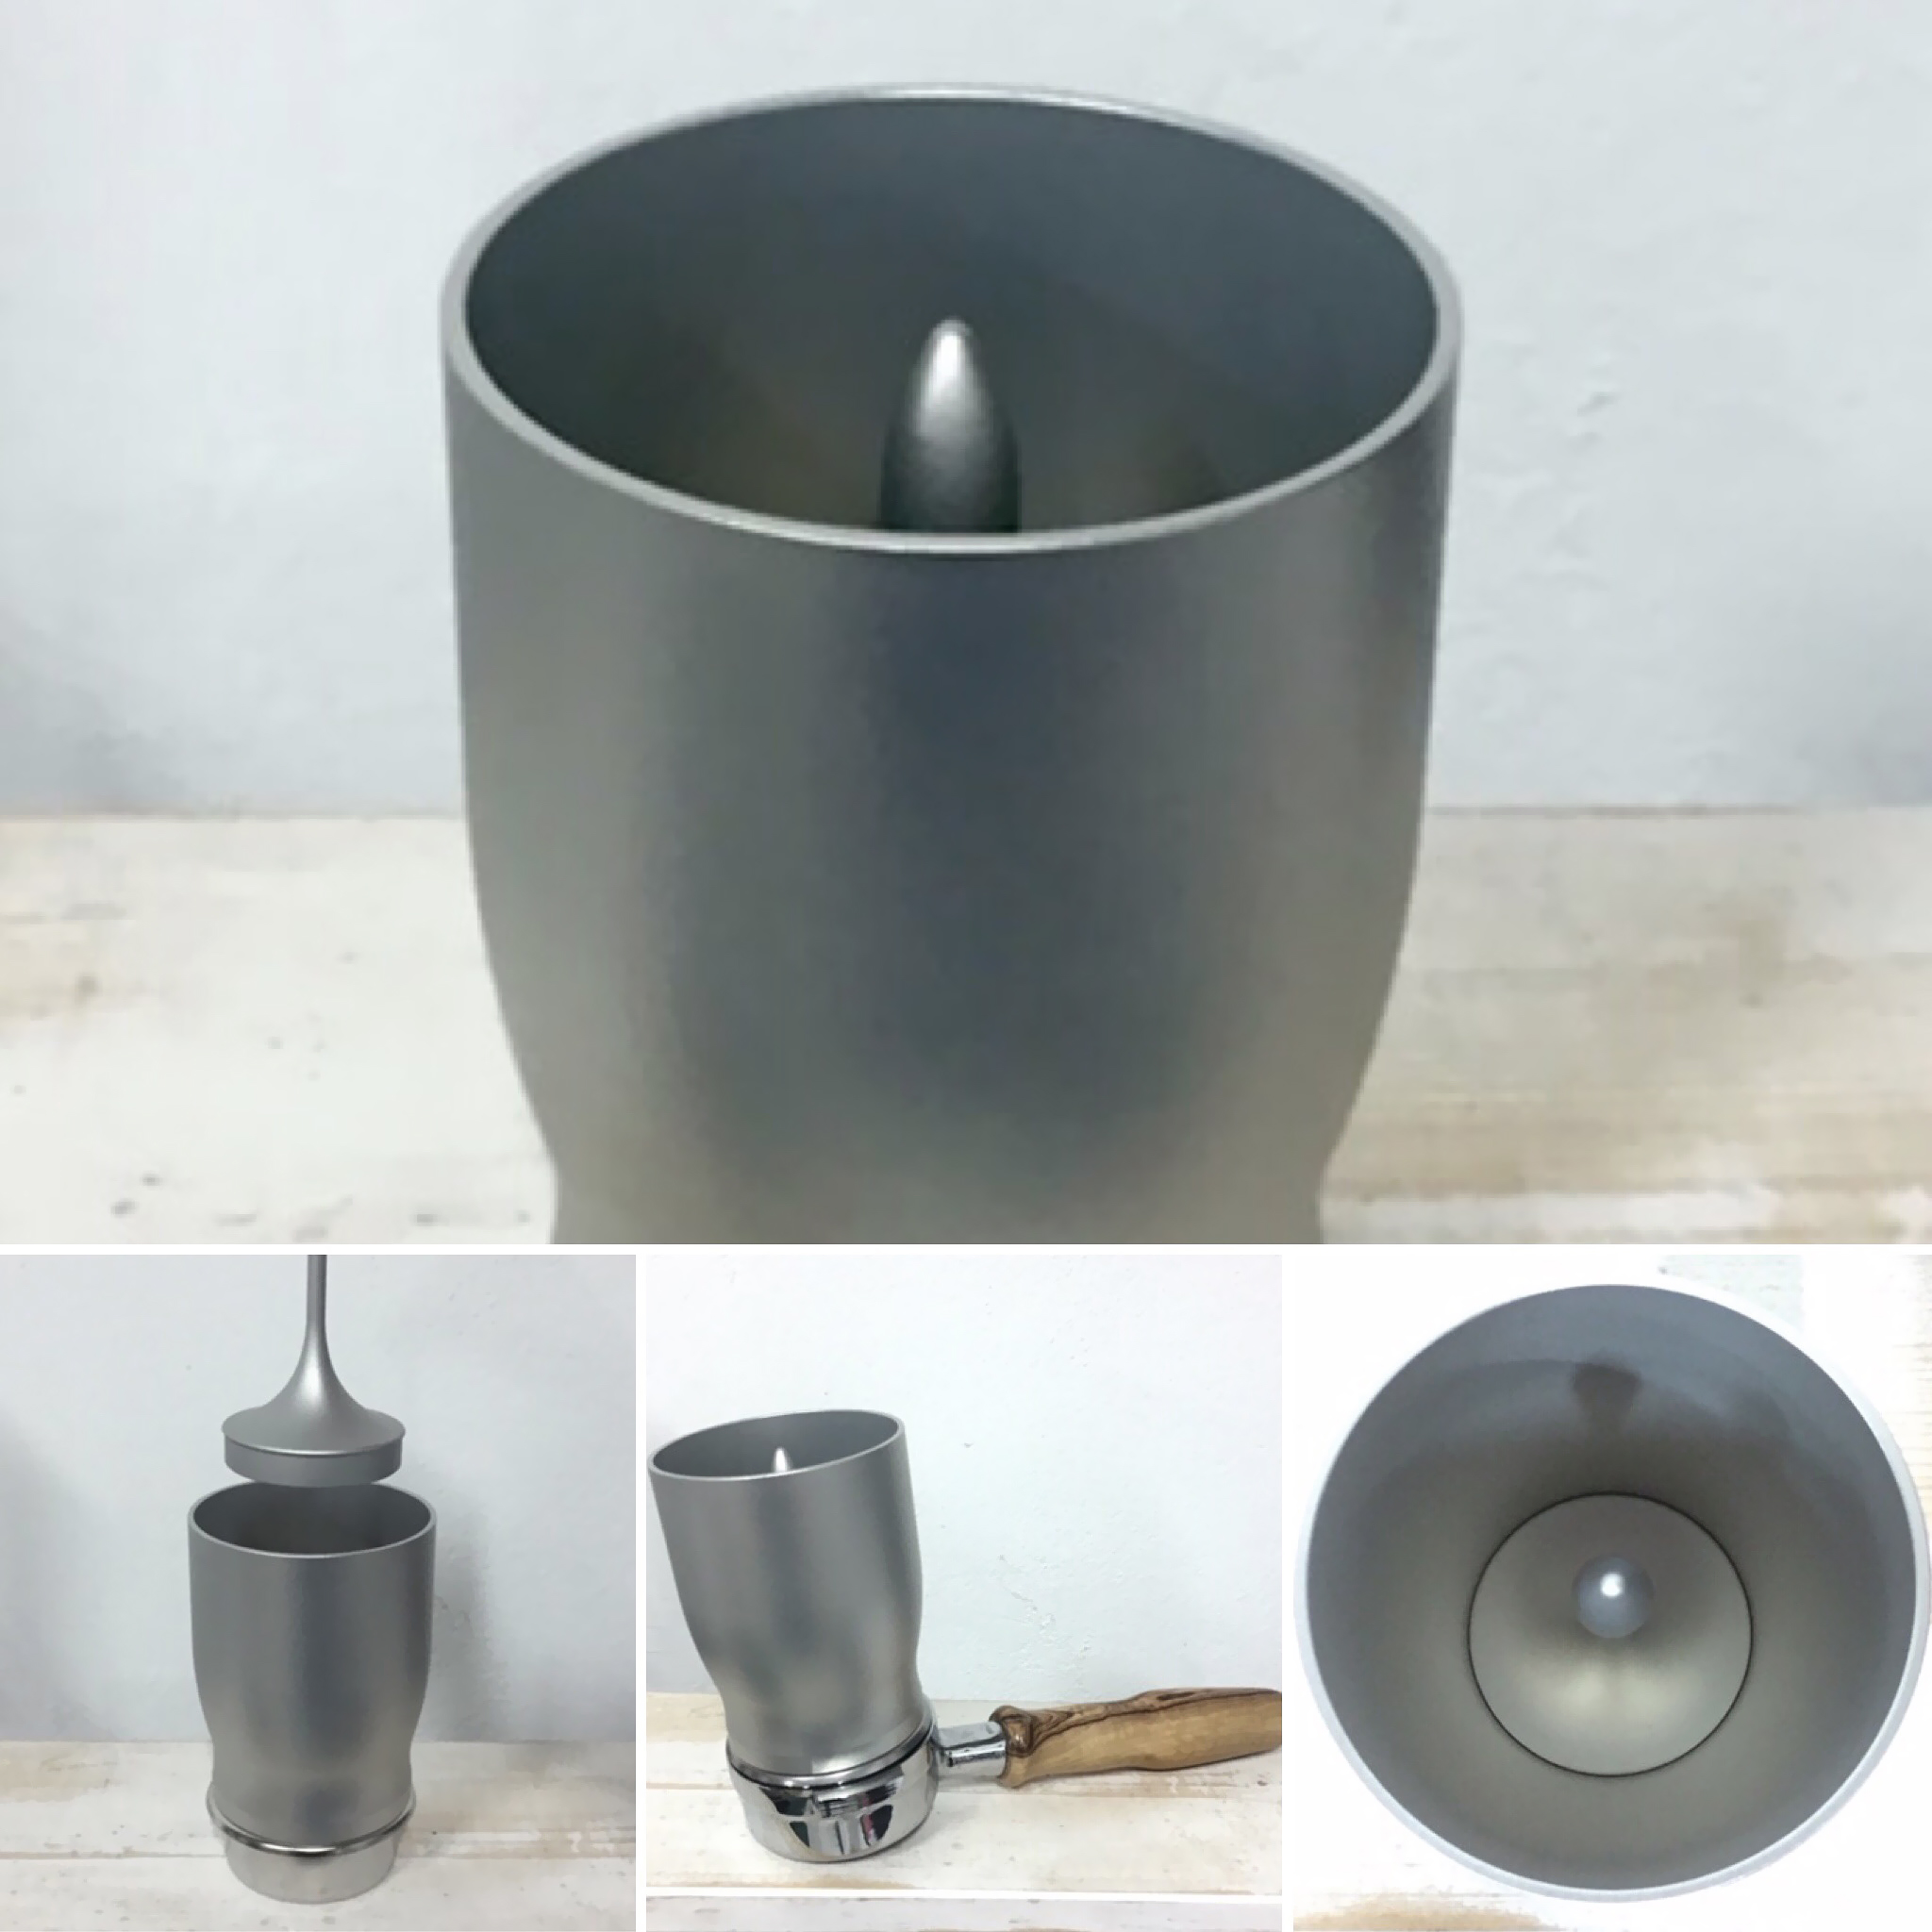 Filling Funnel for Portafilter 58/58.5 mm - Expected in Silver, Black, INOX